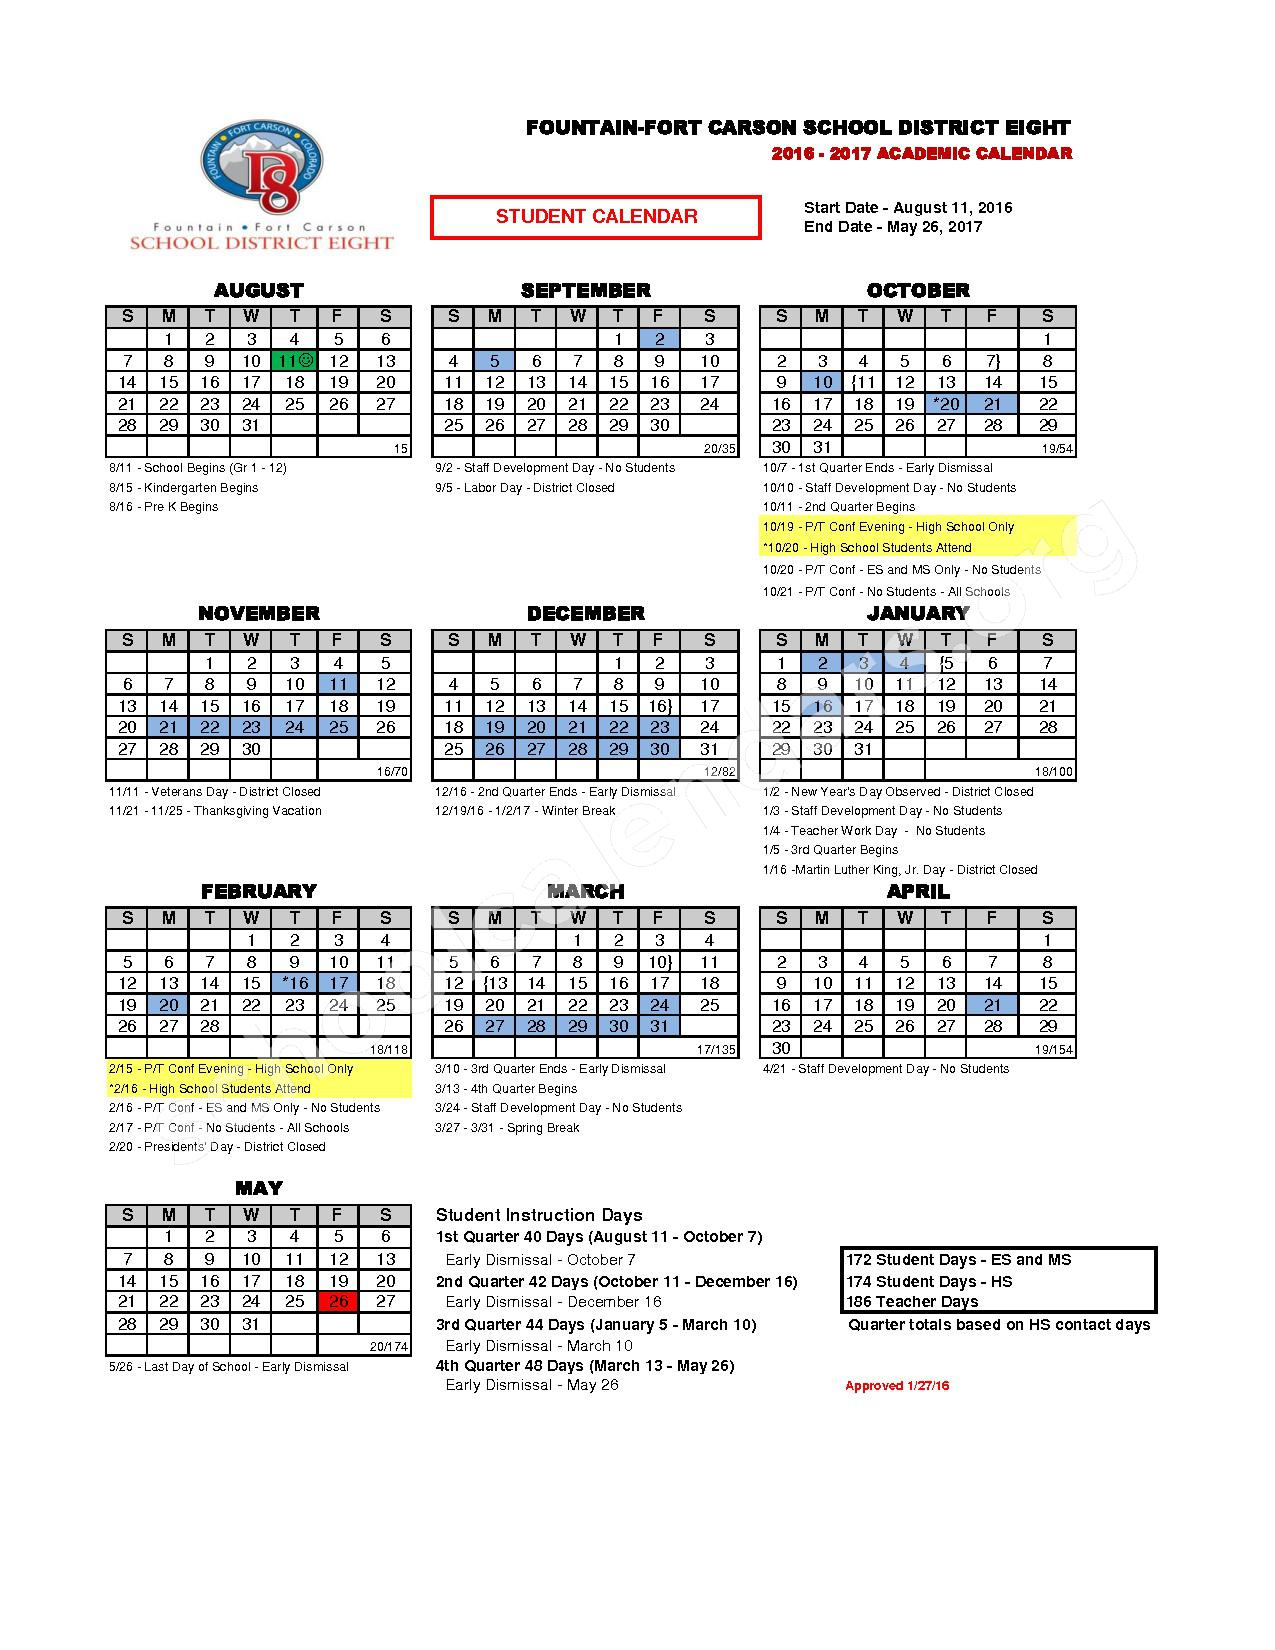 2016 - 2017 School Calendar – Fountain-Fort Carson School District 8 – page 1